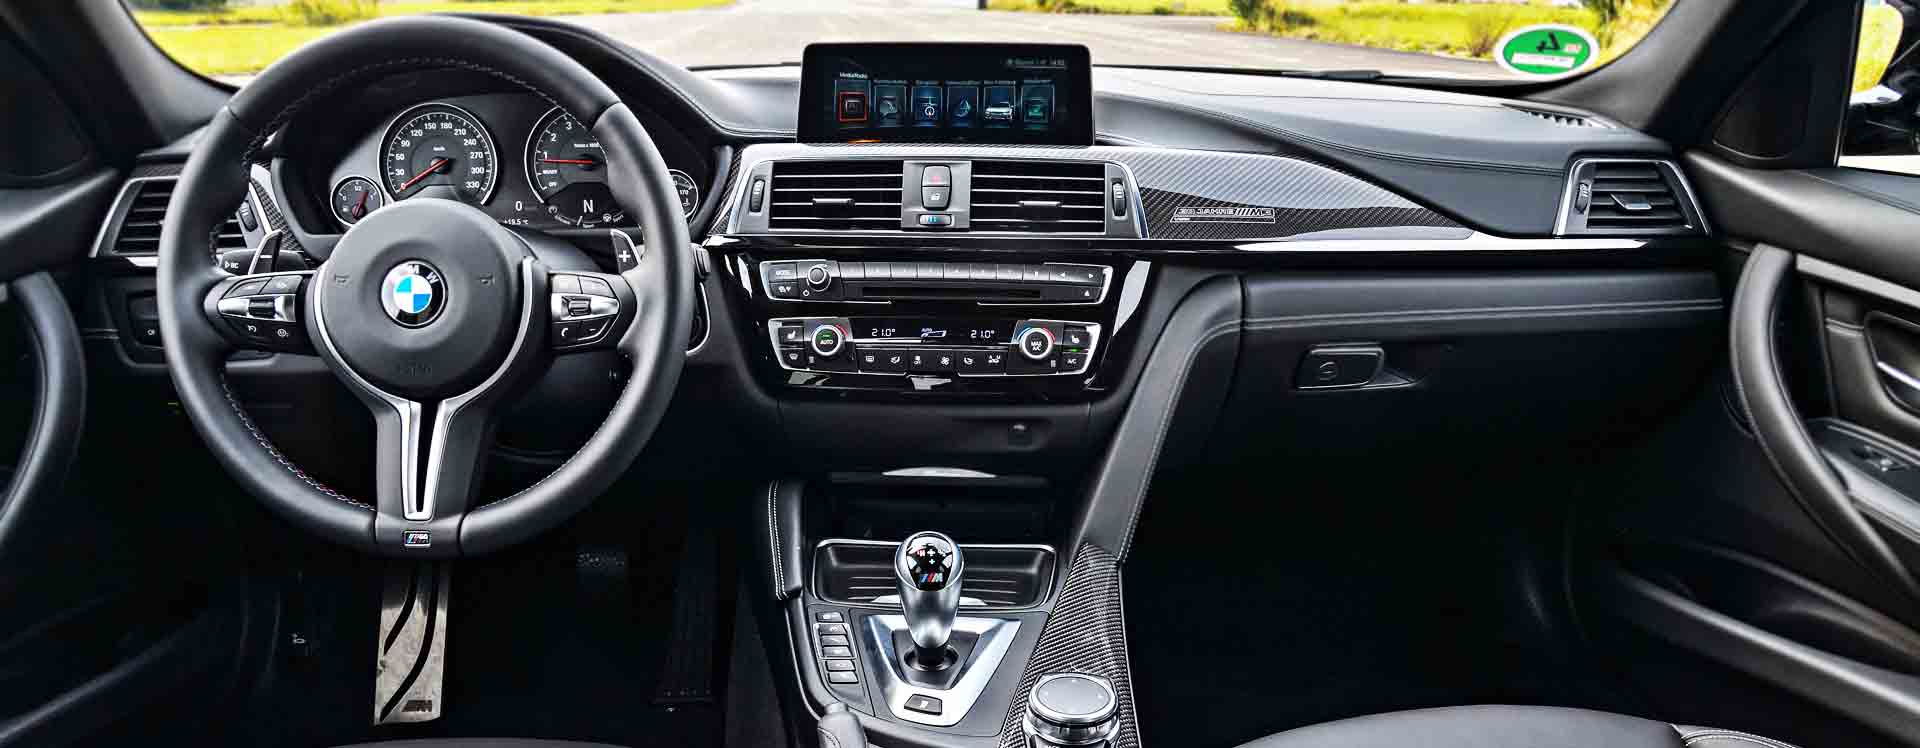 Bmw Head Up Display How It Works And What Information Can You See